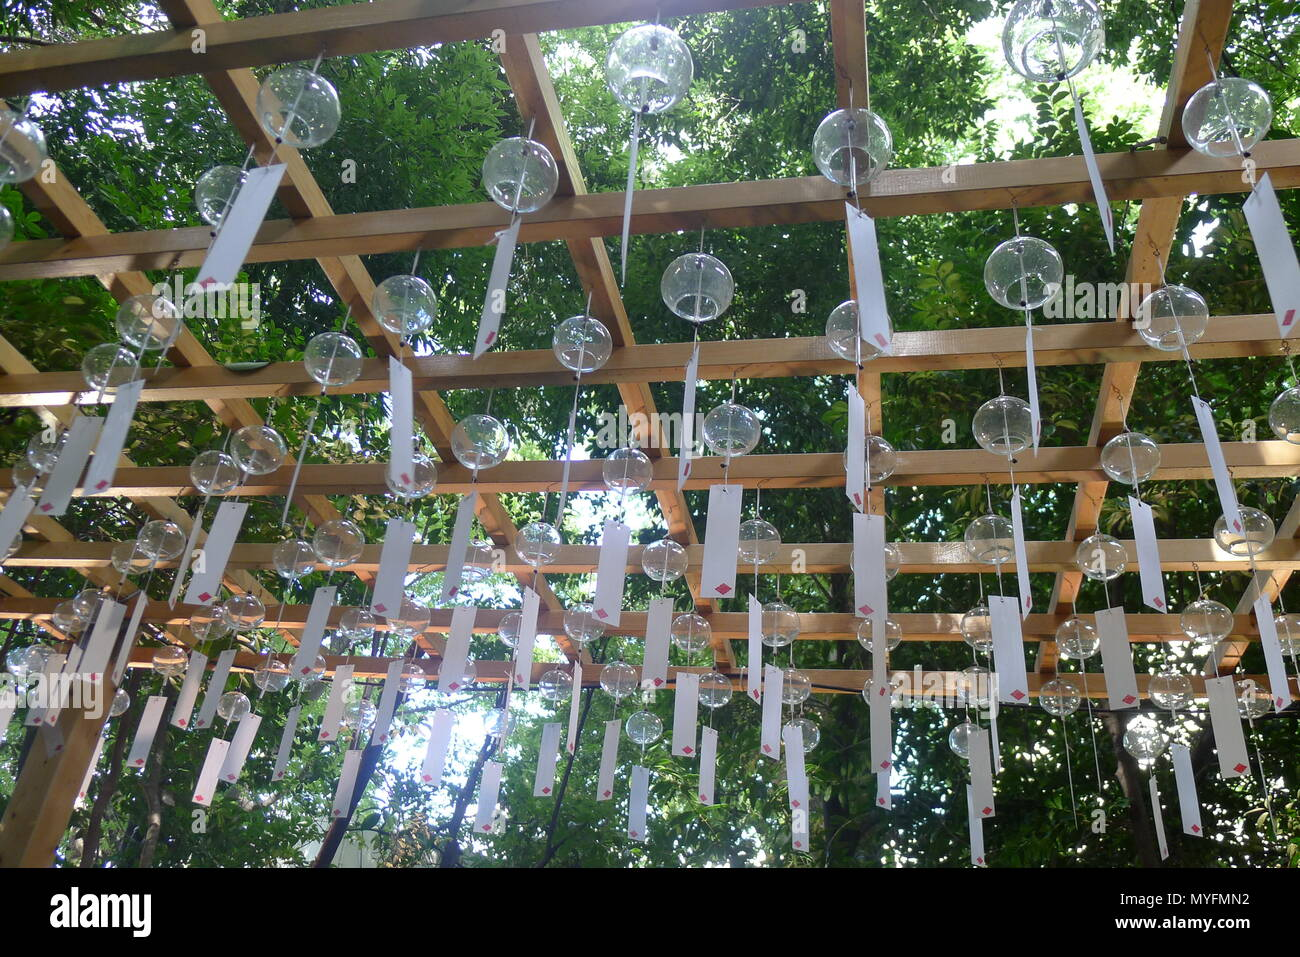 Windspiel Garten In Kawagoe Japan Stockfoto Bild 189044942 Alamy